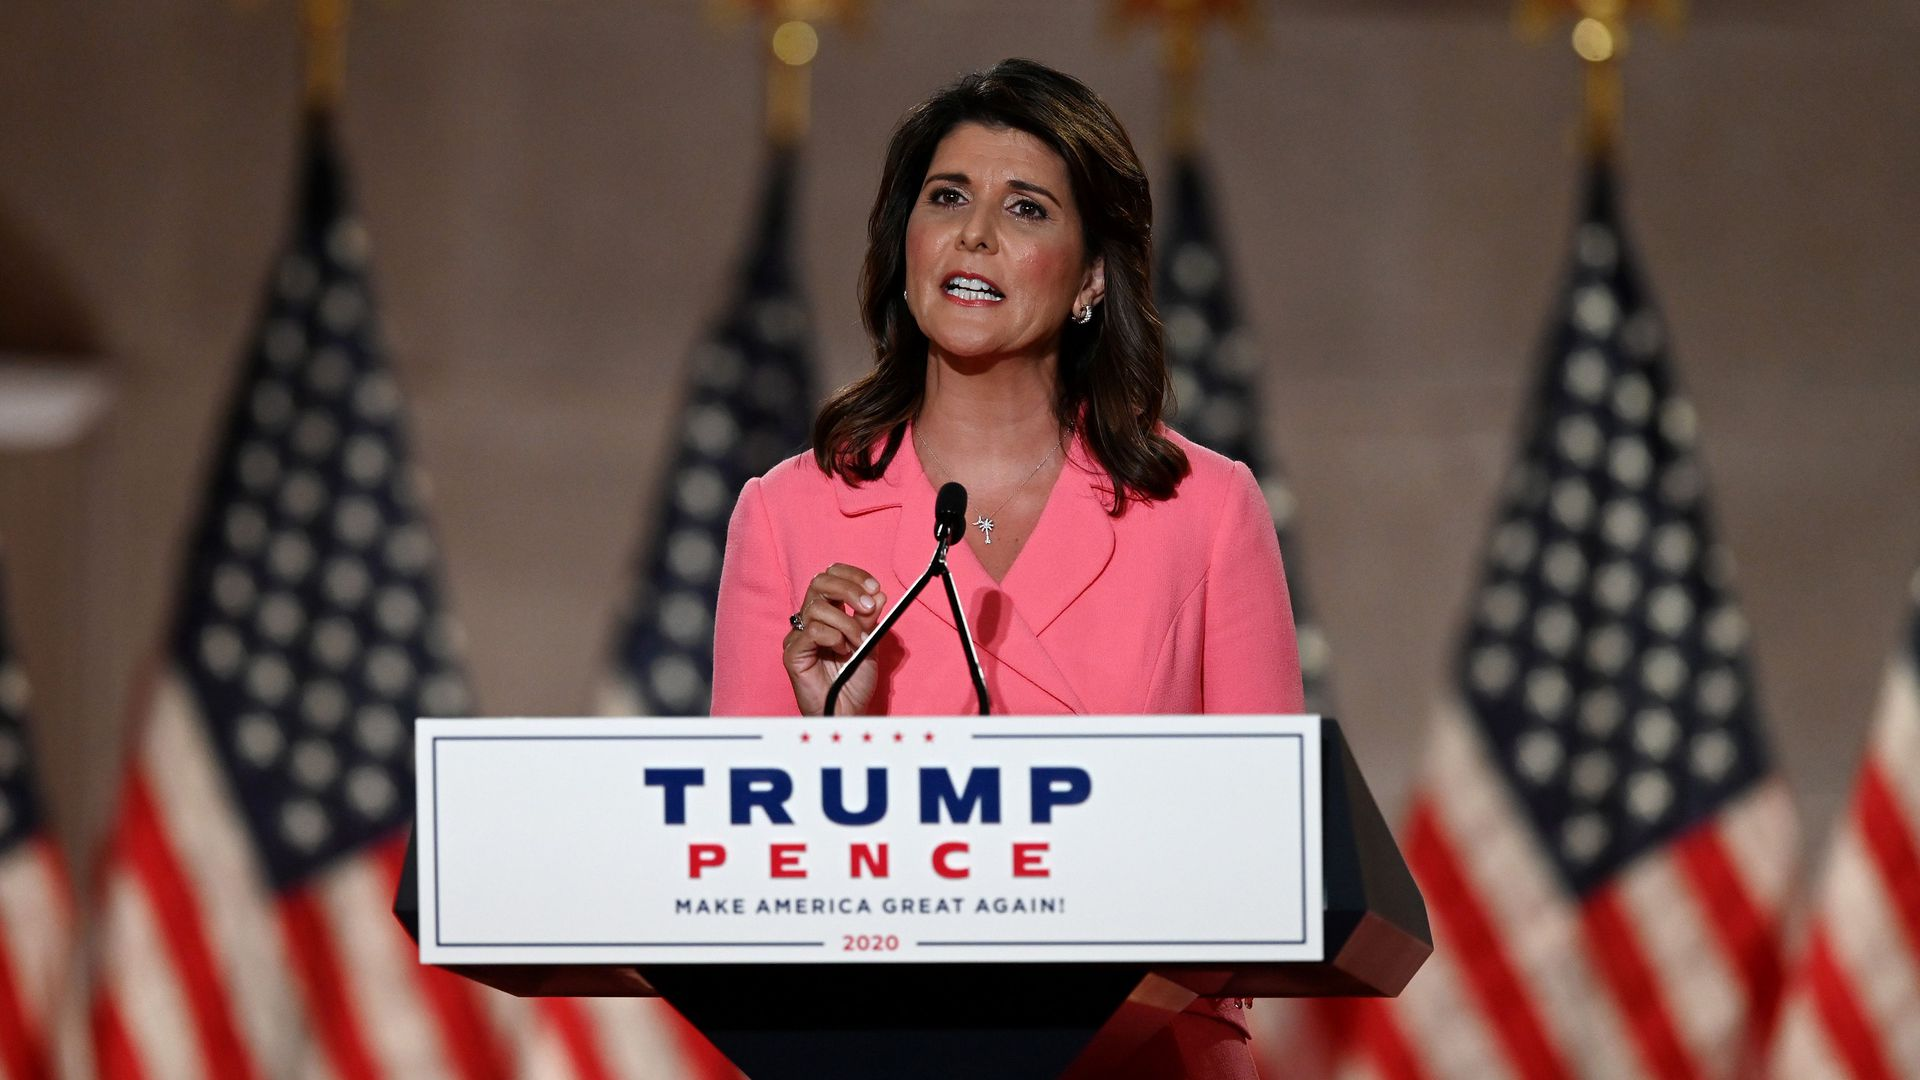 AXIOS – Nikki Haley's new PAC steers clear of Trump brand